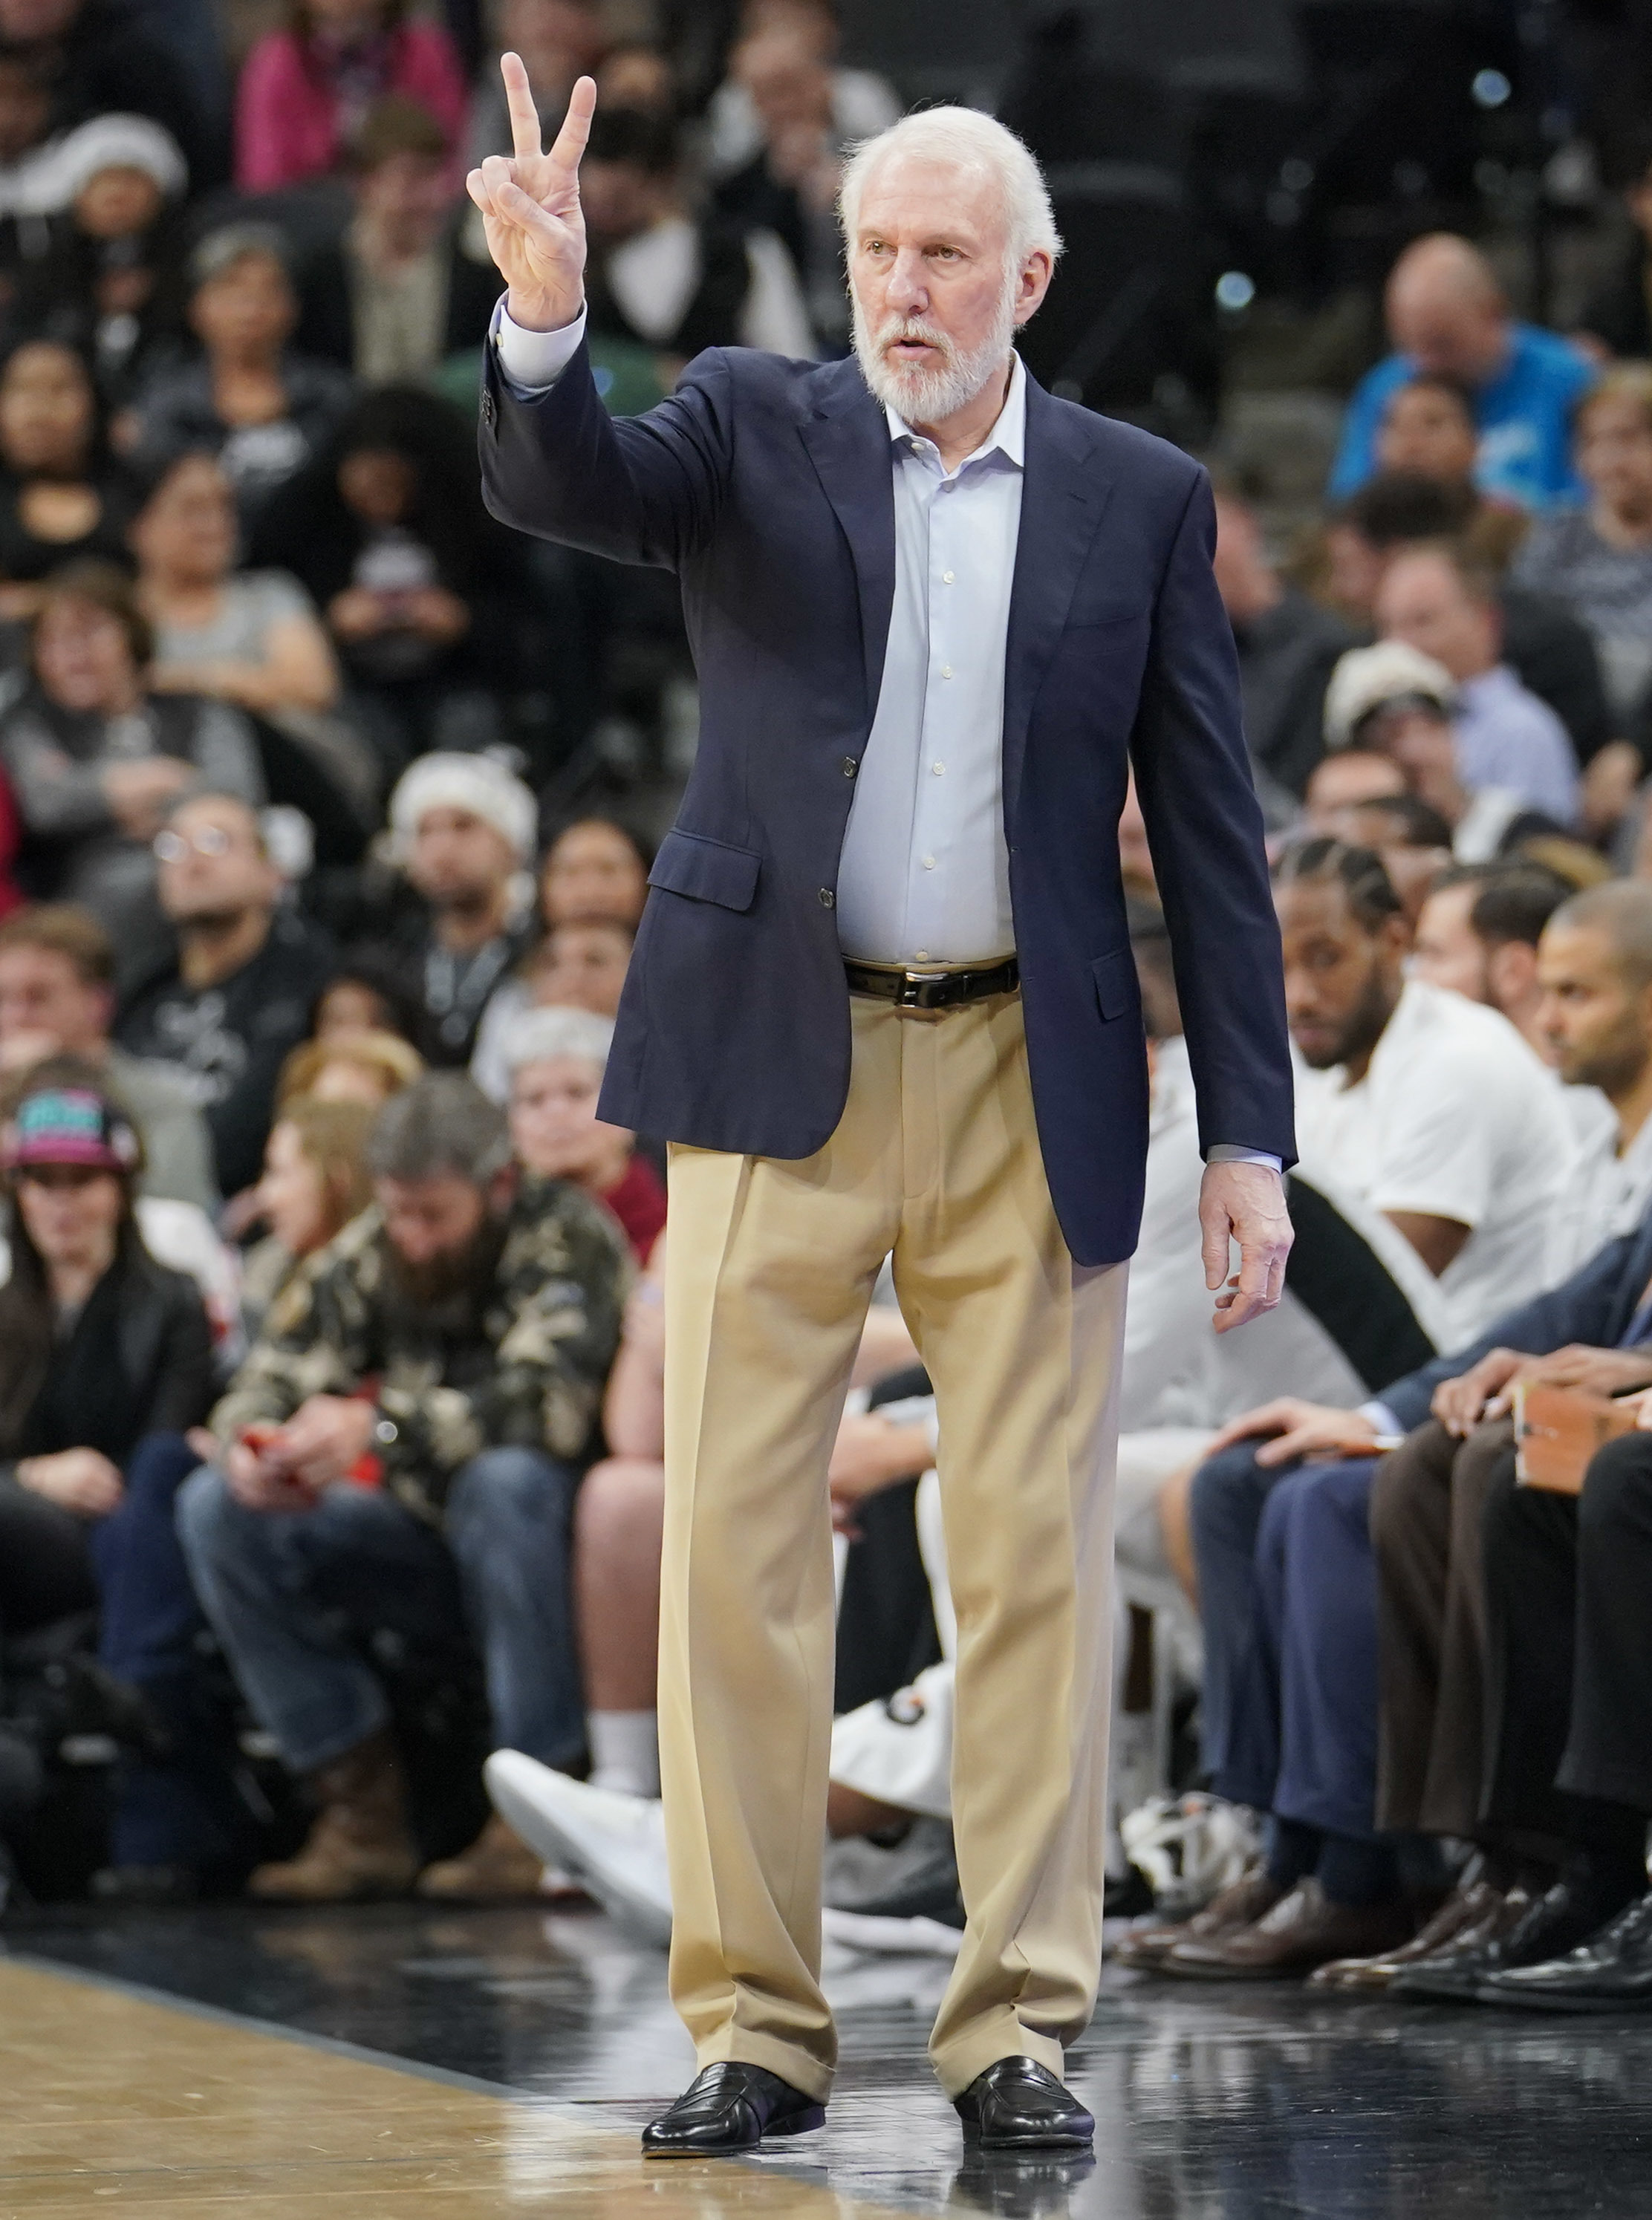 San Antonio Spurs head coach Gregg Popovich signals to his players during the first half of an NBA basketball game against the Los Angeles Clippers, Monday, Dec. 18, 2017, in San Antonio. (AP Photo/Darren Abate)